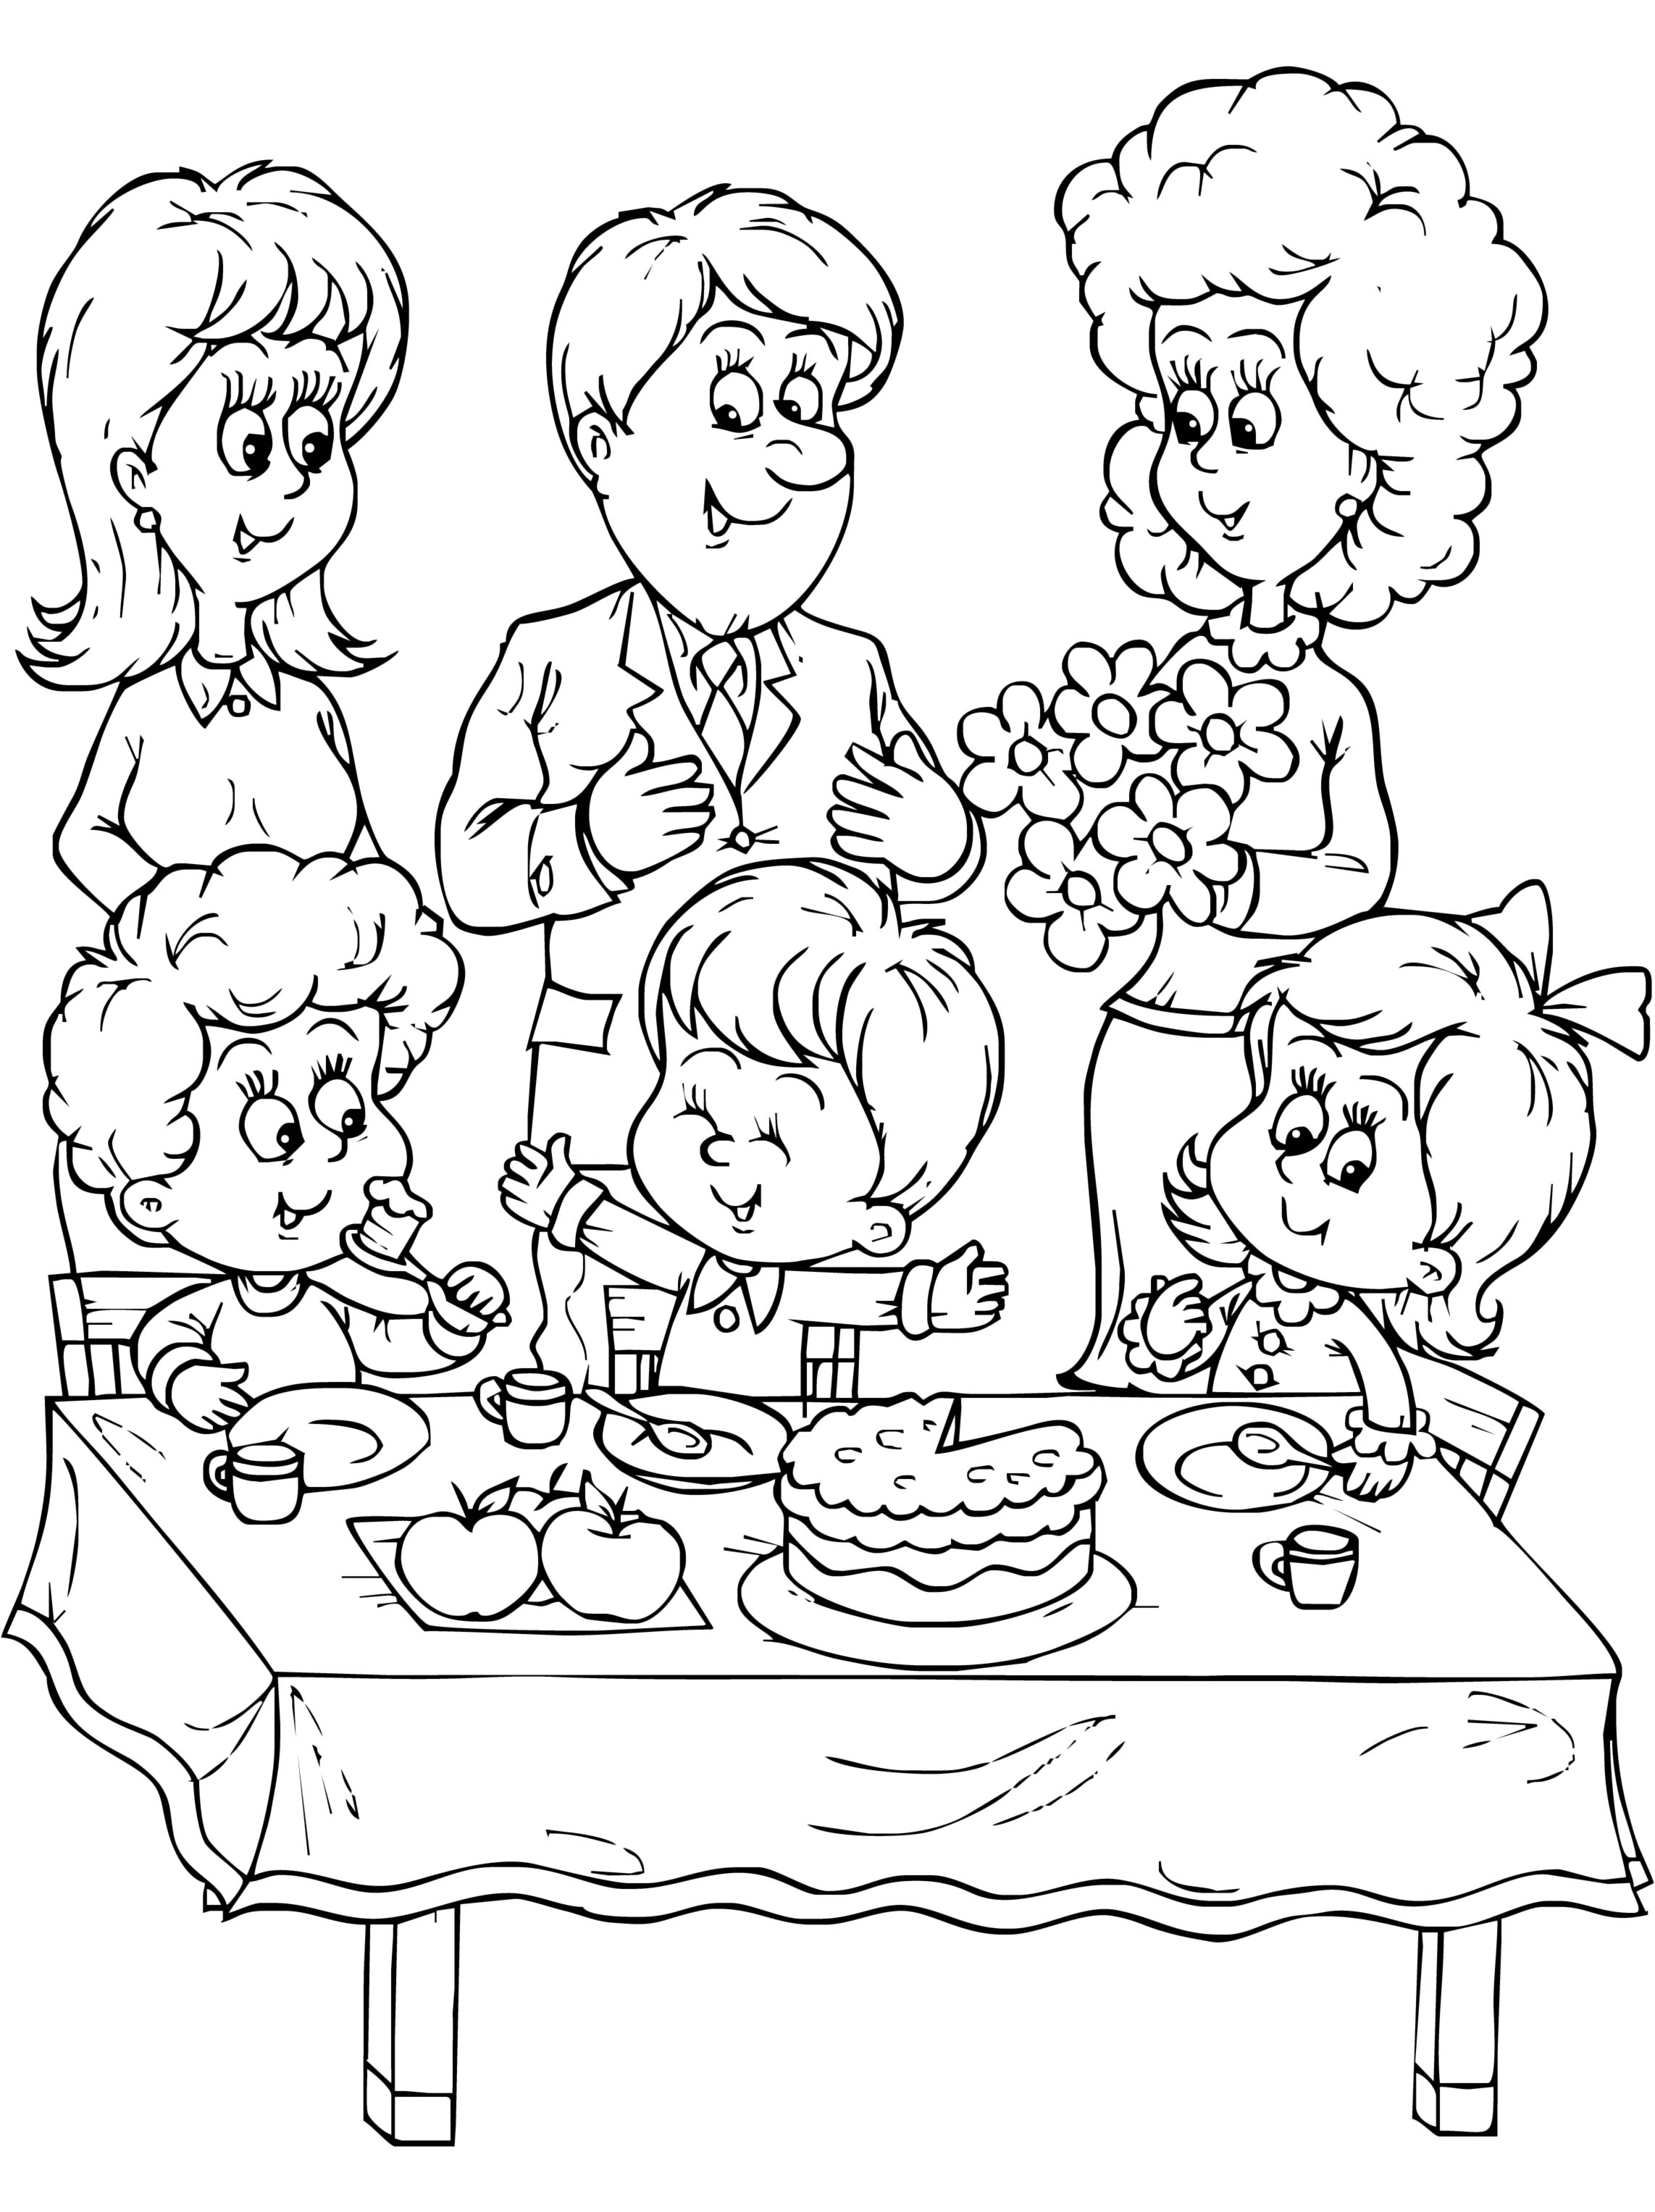 family members coloring worksheets new family member coloring page coloring sky worksheets members family coloring